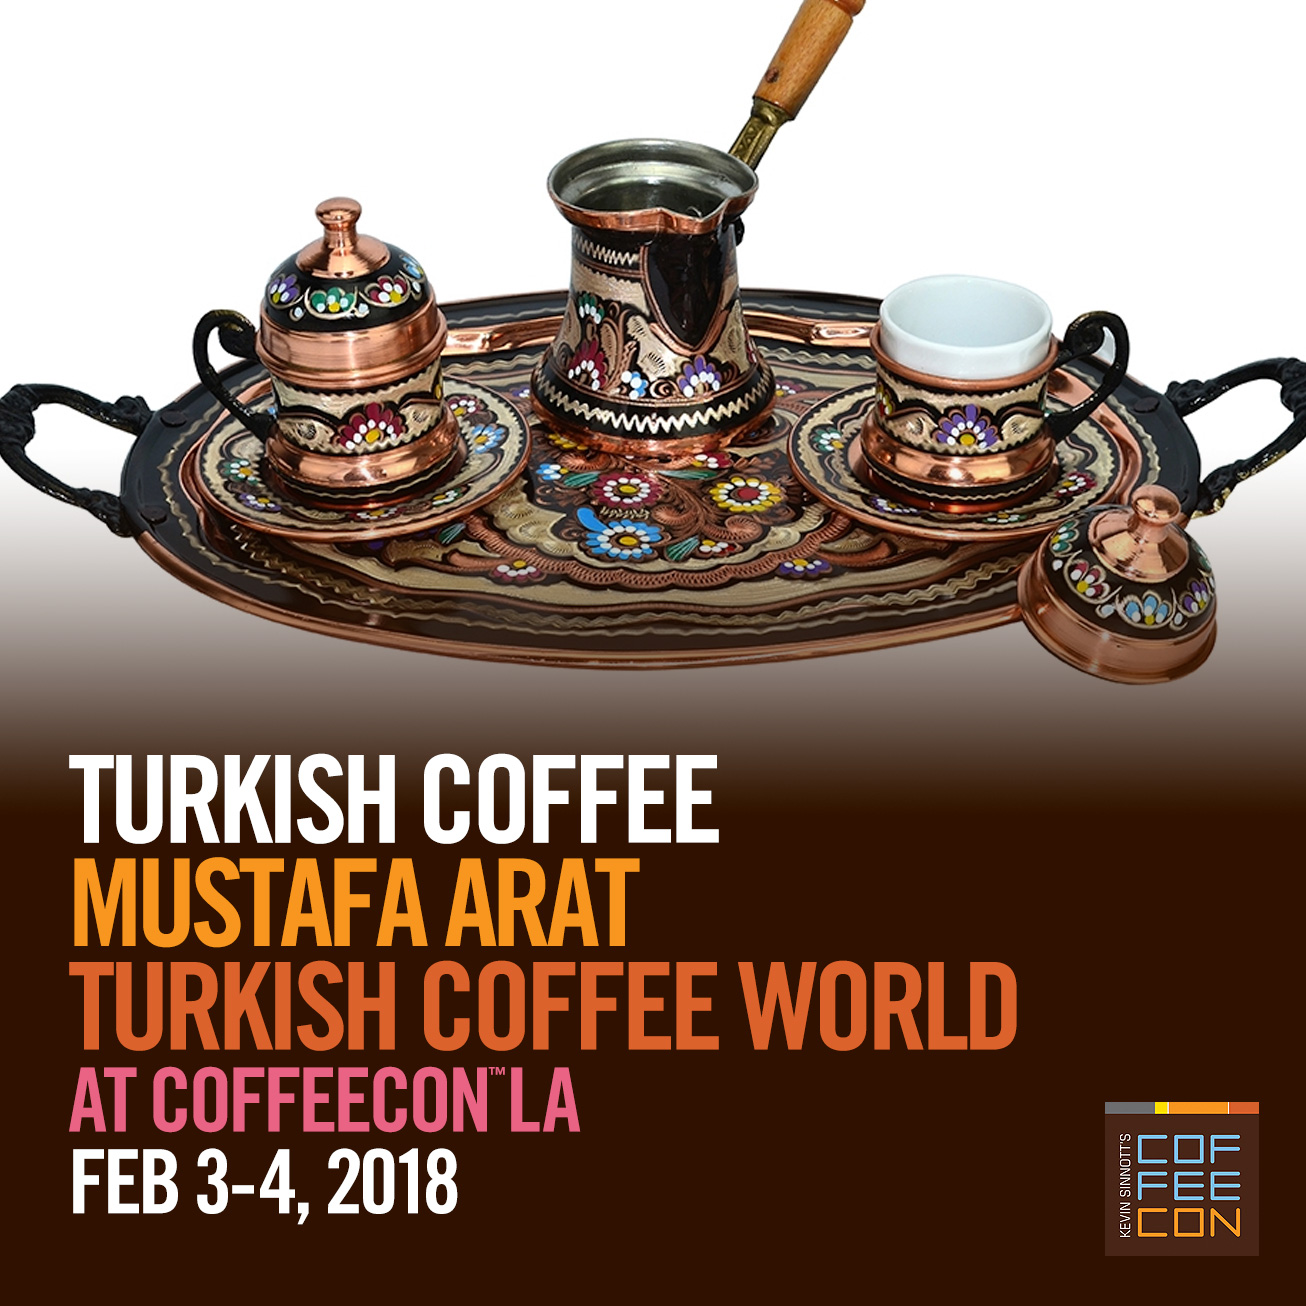 Turkish Coffee at CoffeeConLA 2018 with Mustafa Arat